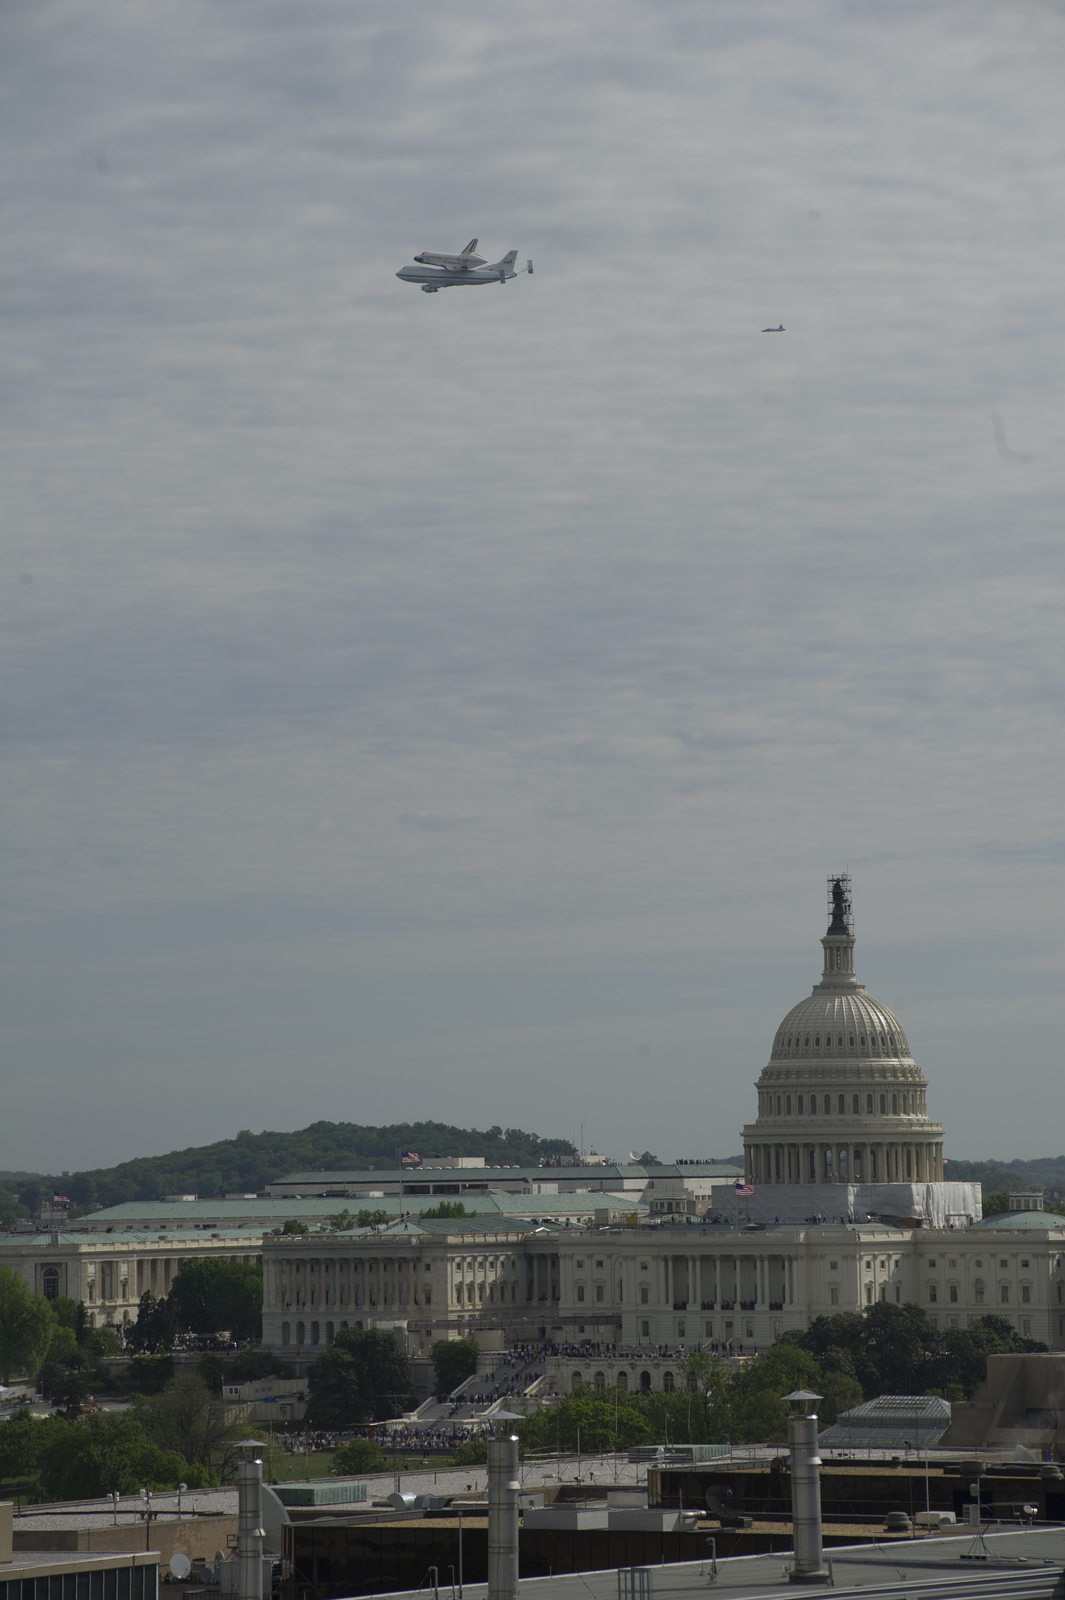 National Aeronautics and Space Administration (NASA) Space Shuttle [Discovery flying over Washington. D.C., on final journey to its permanent museum home]